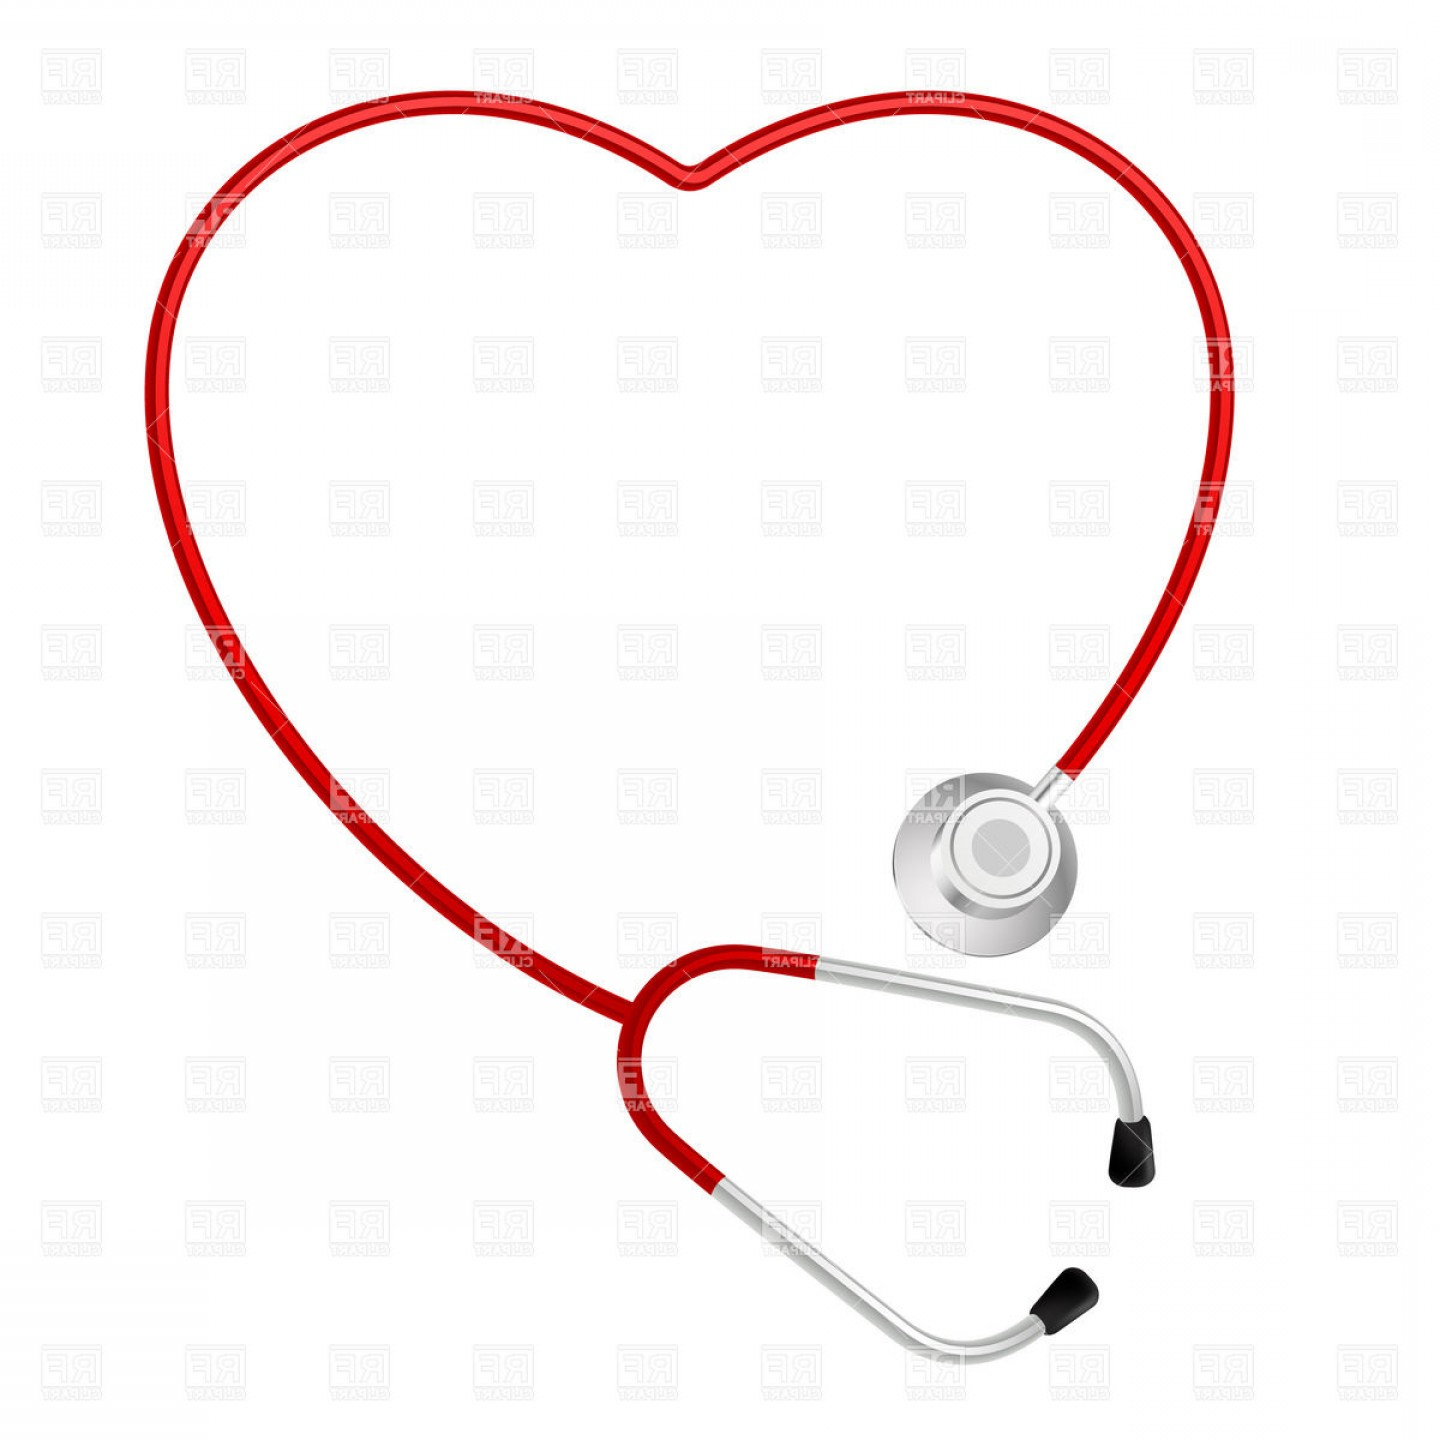 Stethoscope With Heart Vector Art: Heart Shaped Stethoscope Vector Clipart